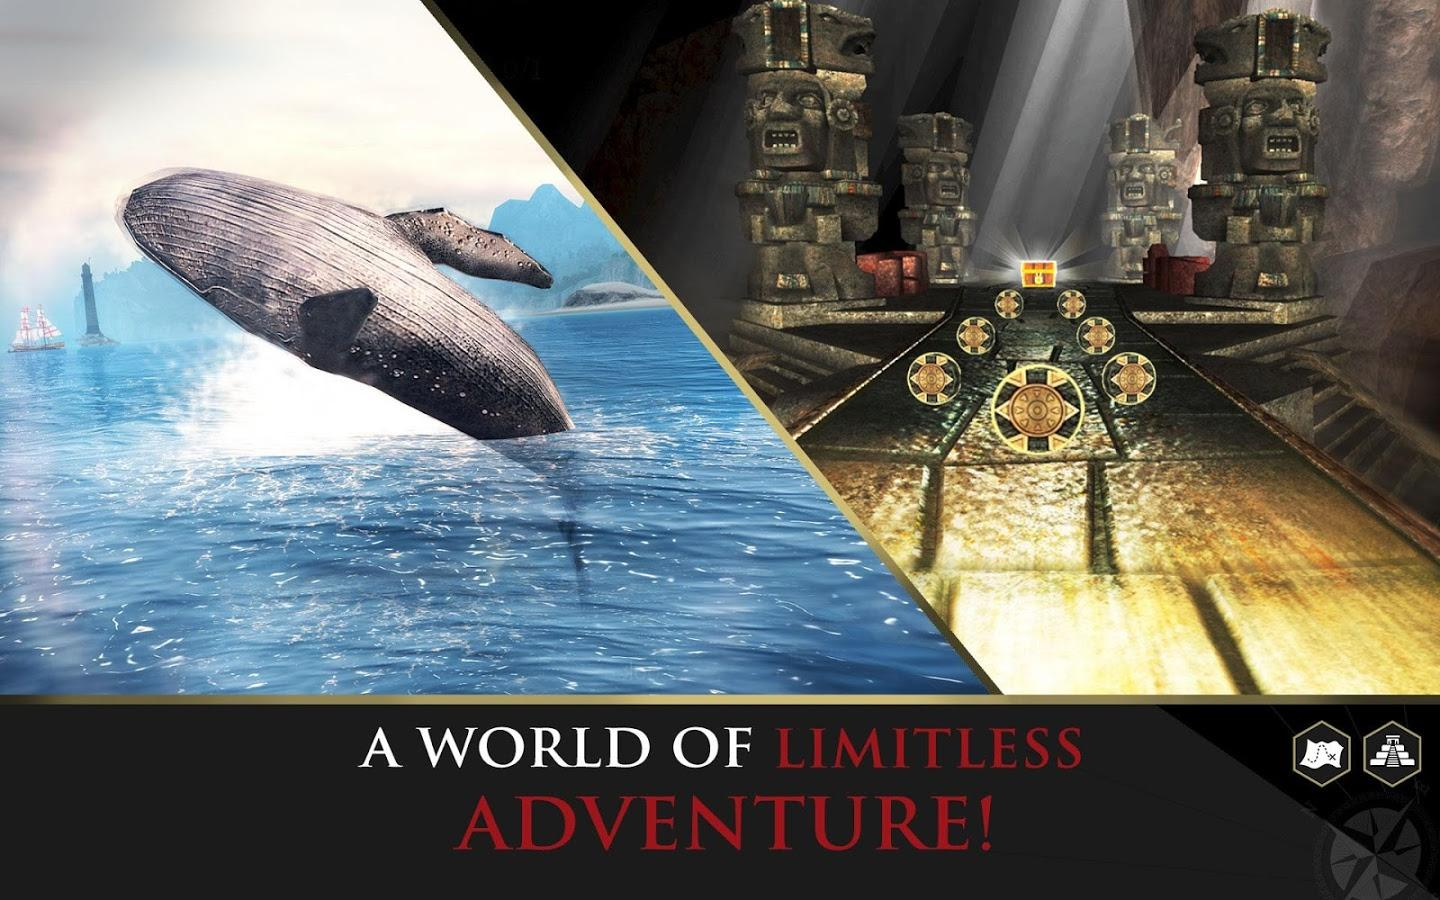 Assassin's Creed Pirates (MOD APK, Unlimited Money) v2.9.1 4